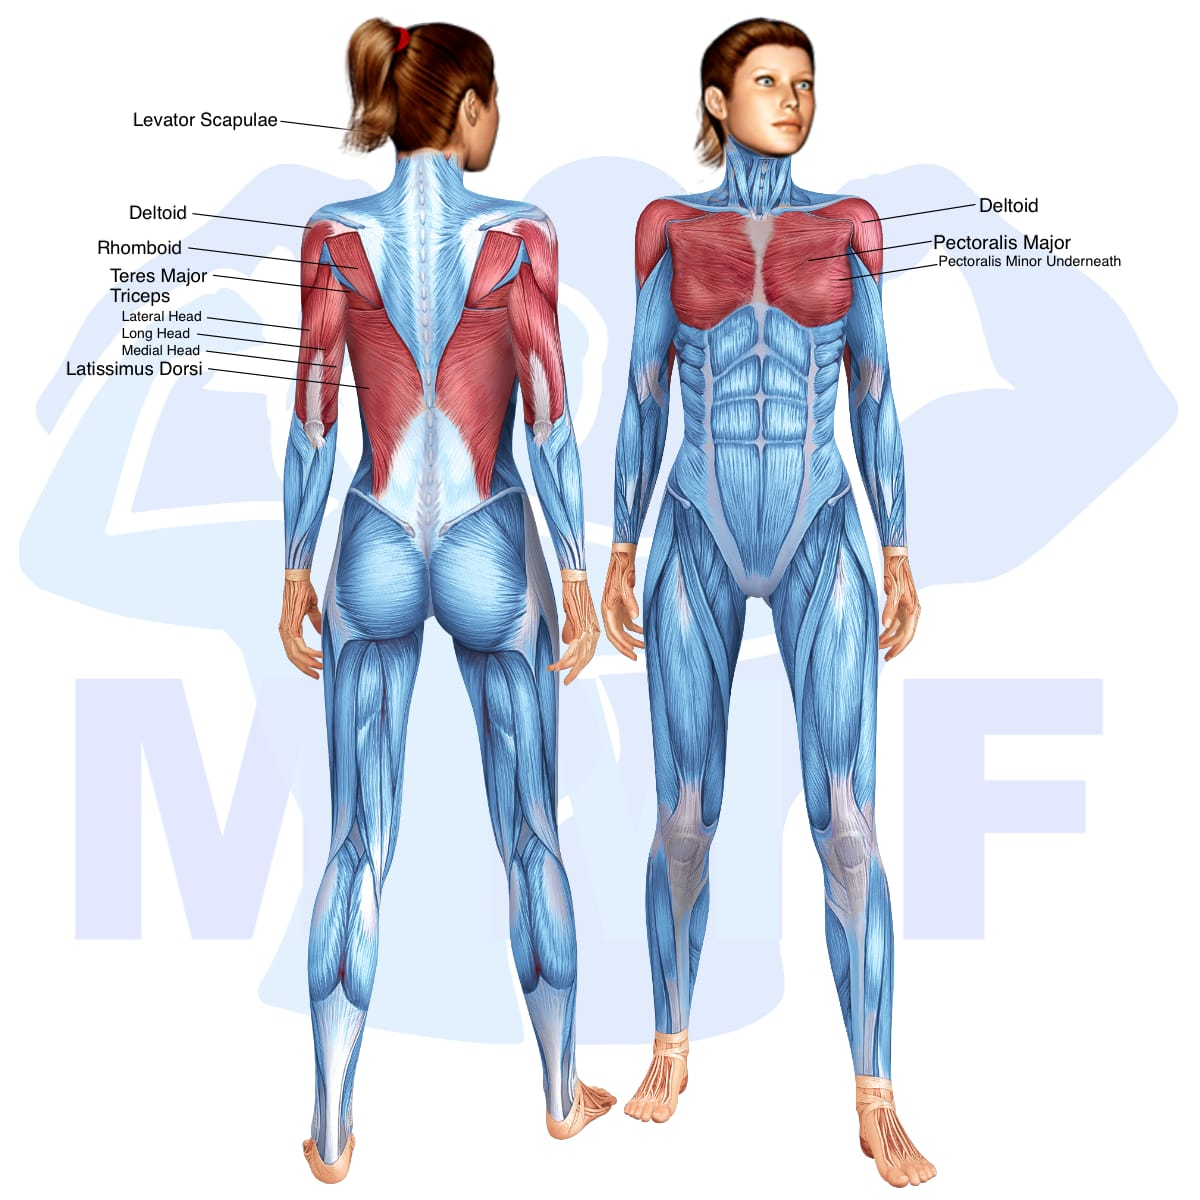 Skeletal muscle systems for a muscular woman, with muscles highlighted in red that are use during resistance band straight arm pulldowns.